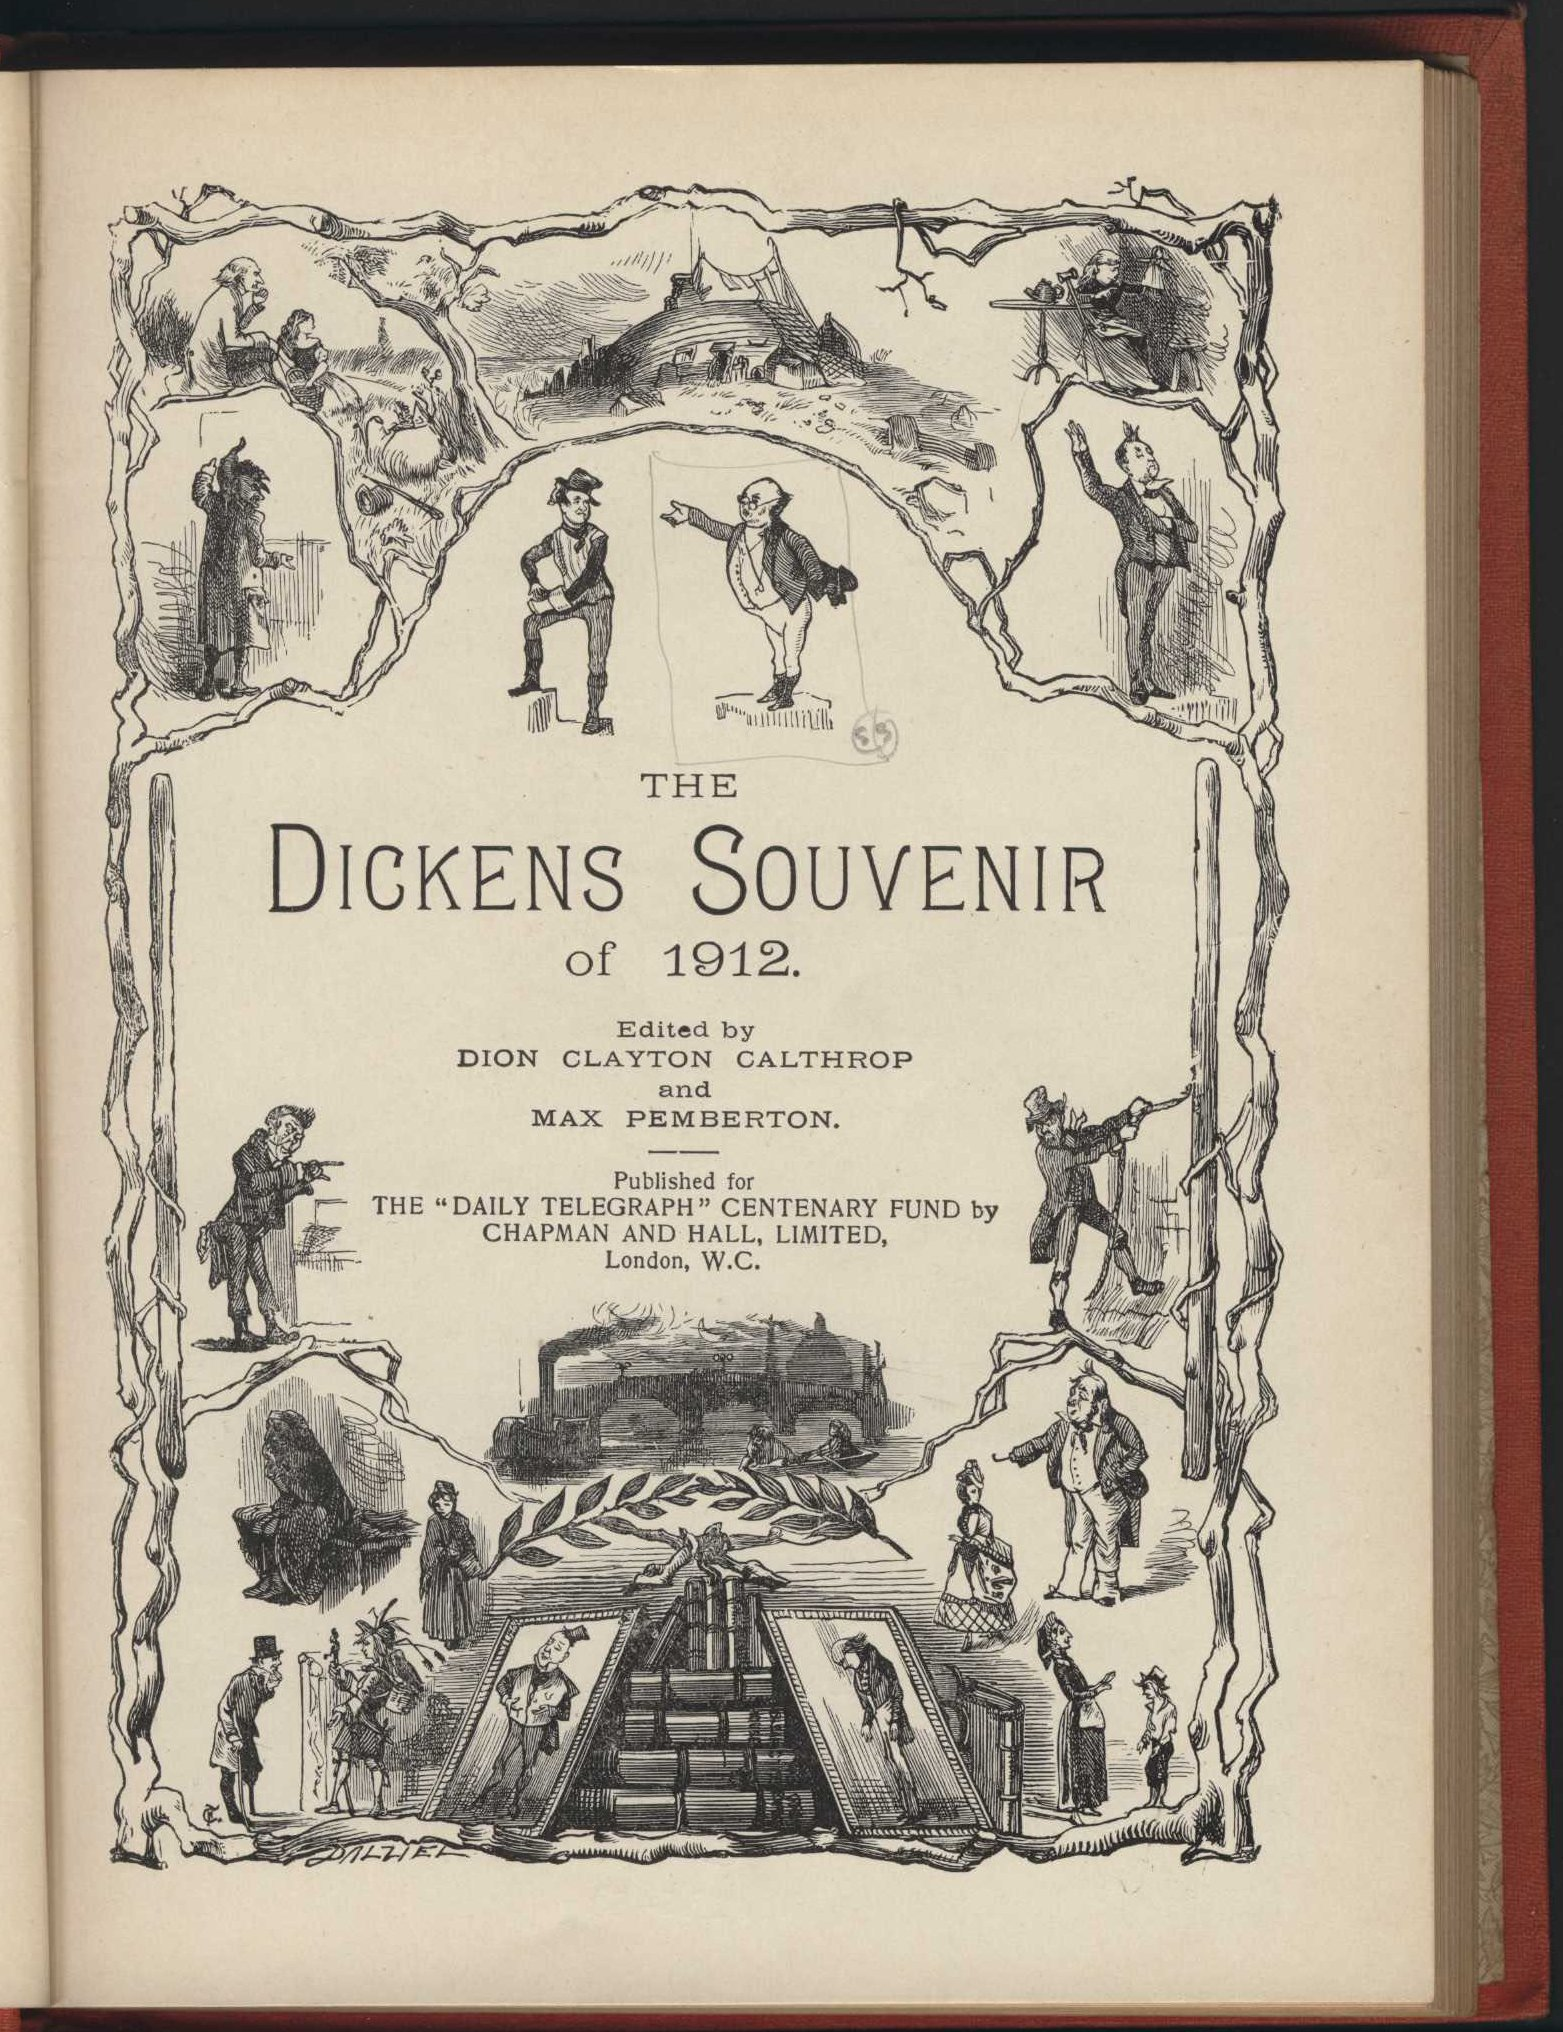 Dion Clayton Calthrop and Max Pemberton (editors). The Dickens souvenir of 1912. London: Published for the Daily Telegraph Centenary Fund by Chapman and Hall, 1912.